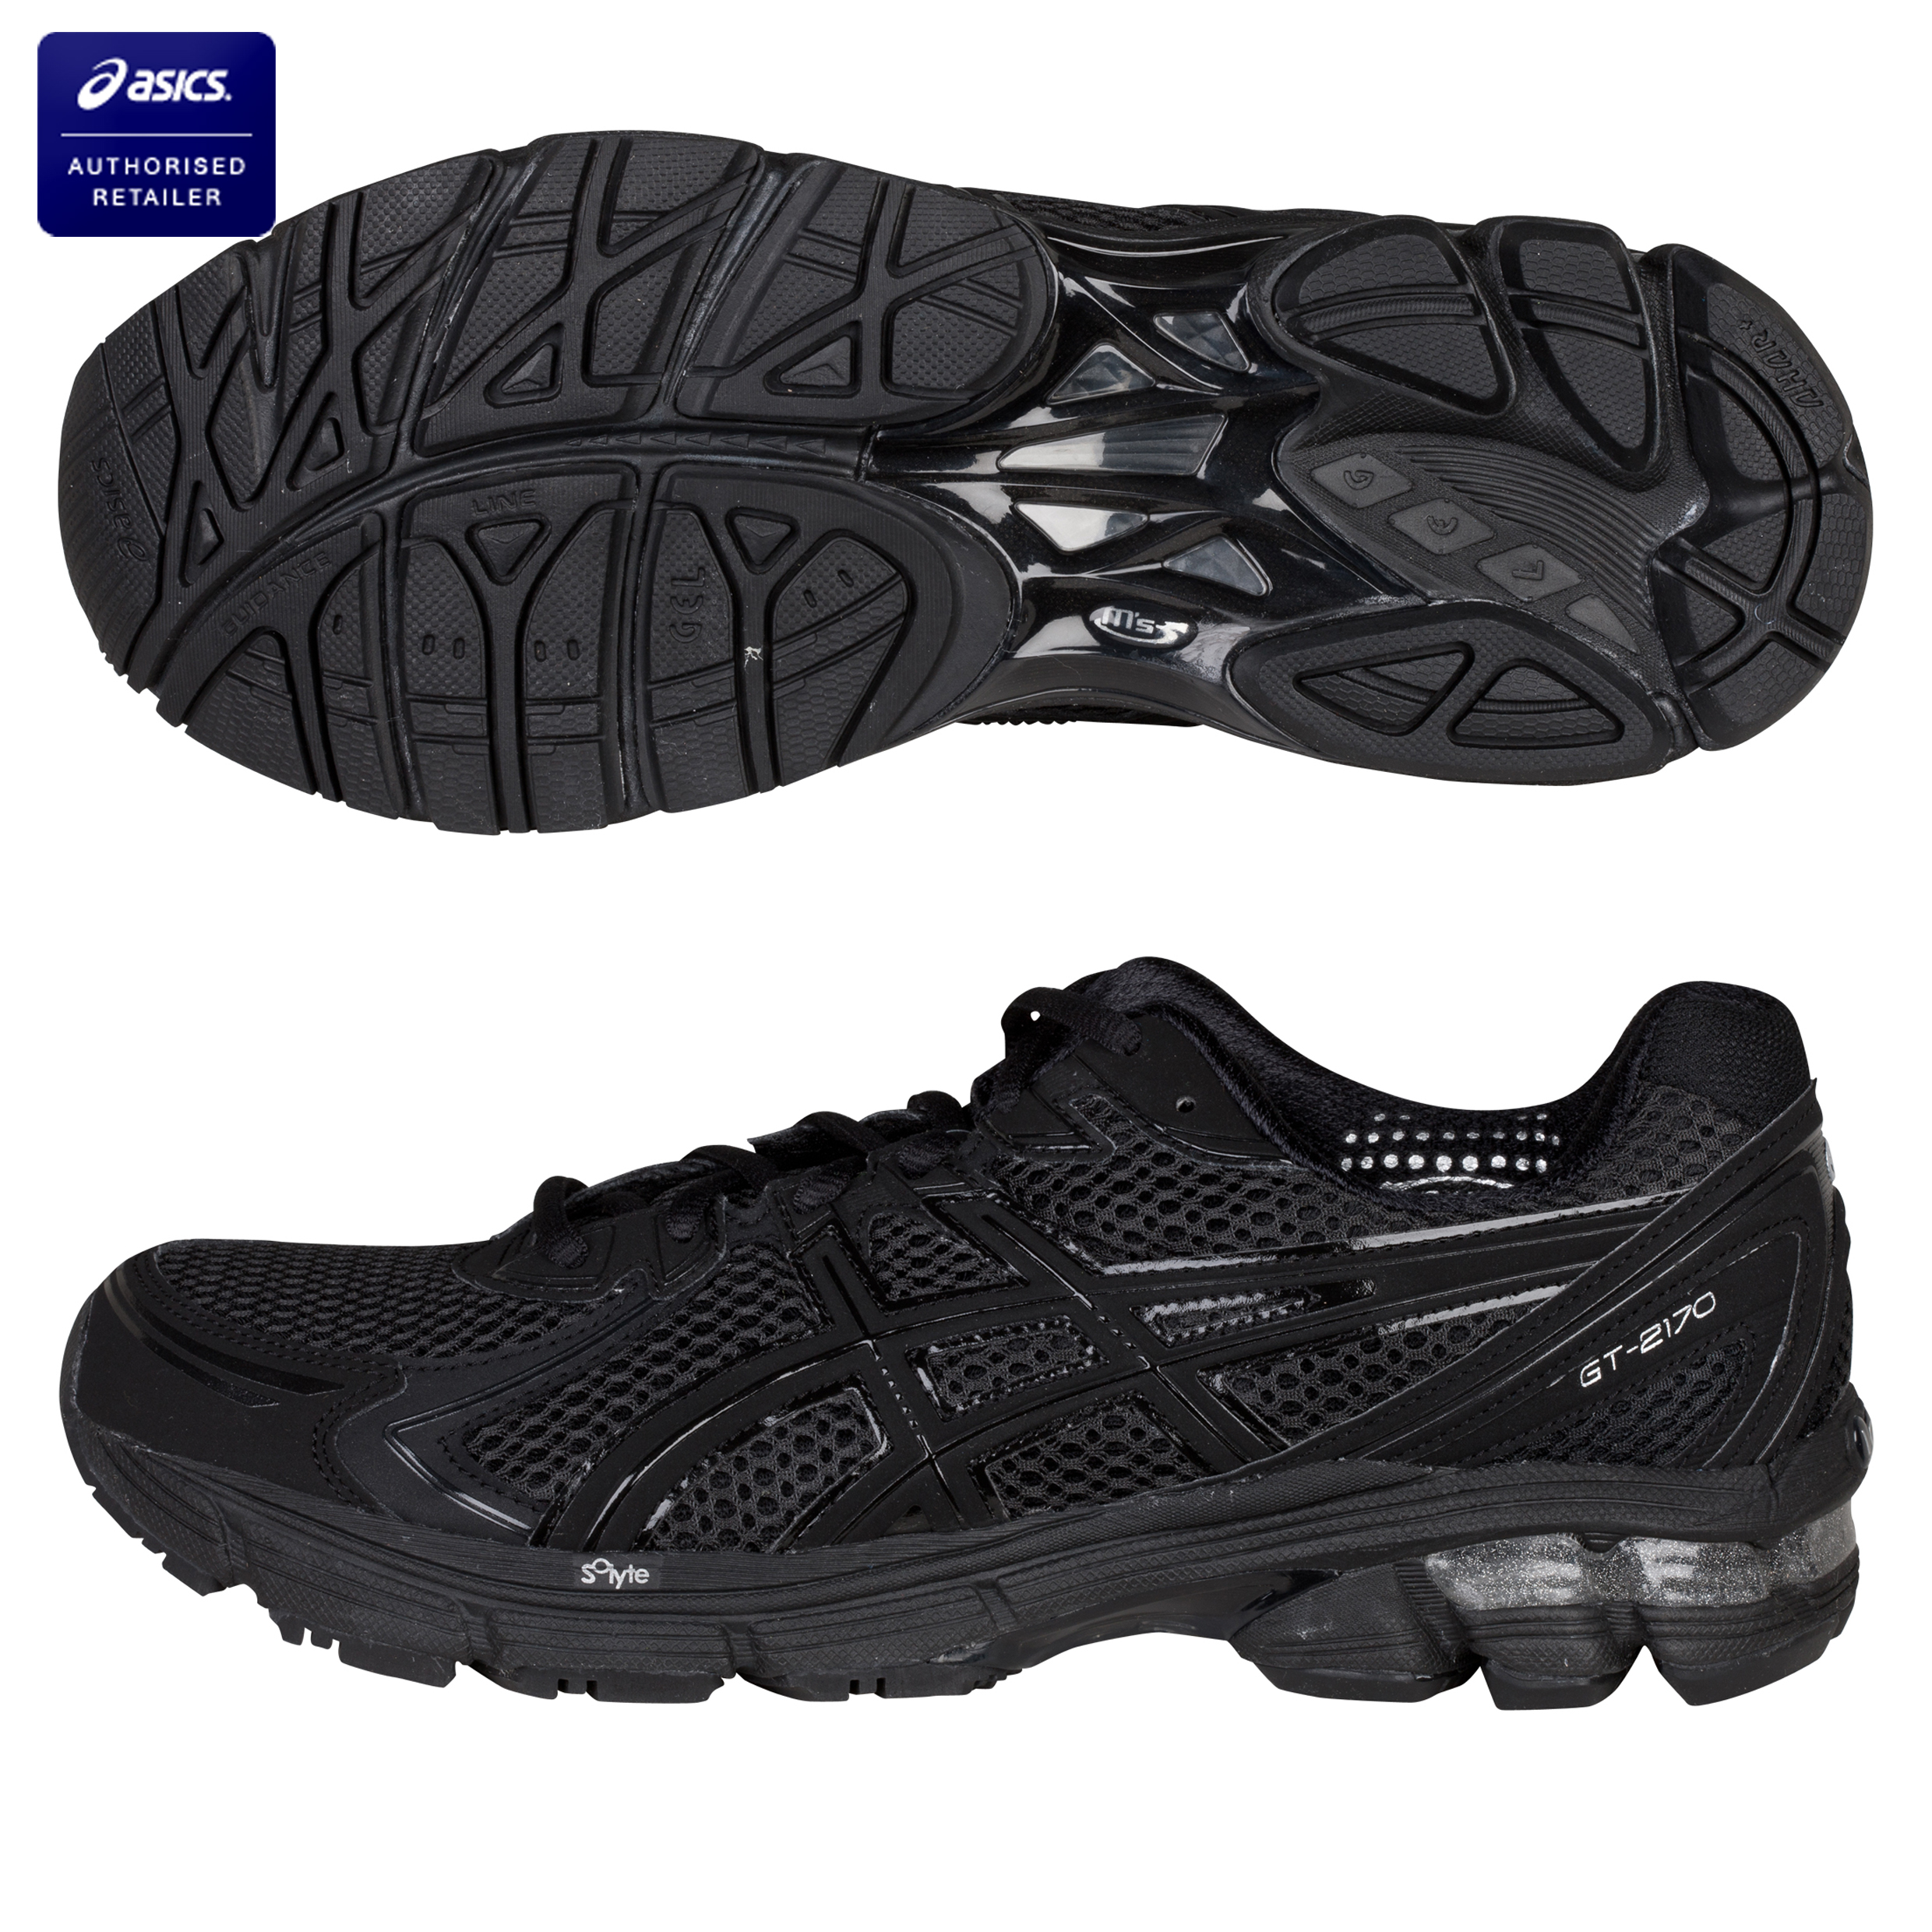 Asics GT-2170 Running Trainers - Black/Onyx/Lightning